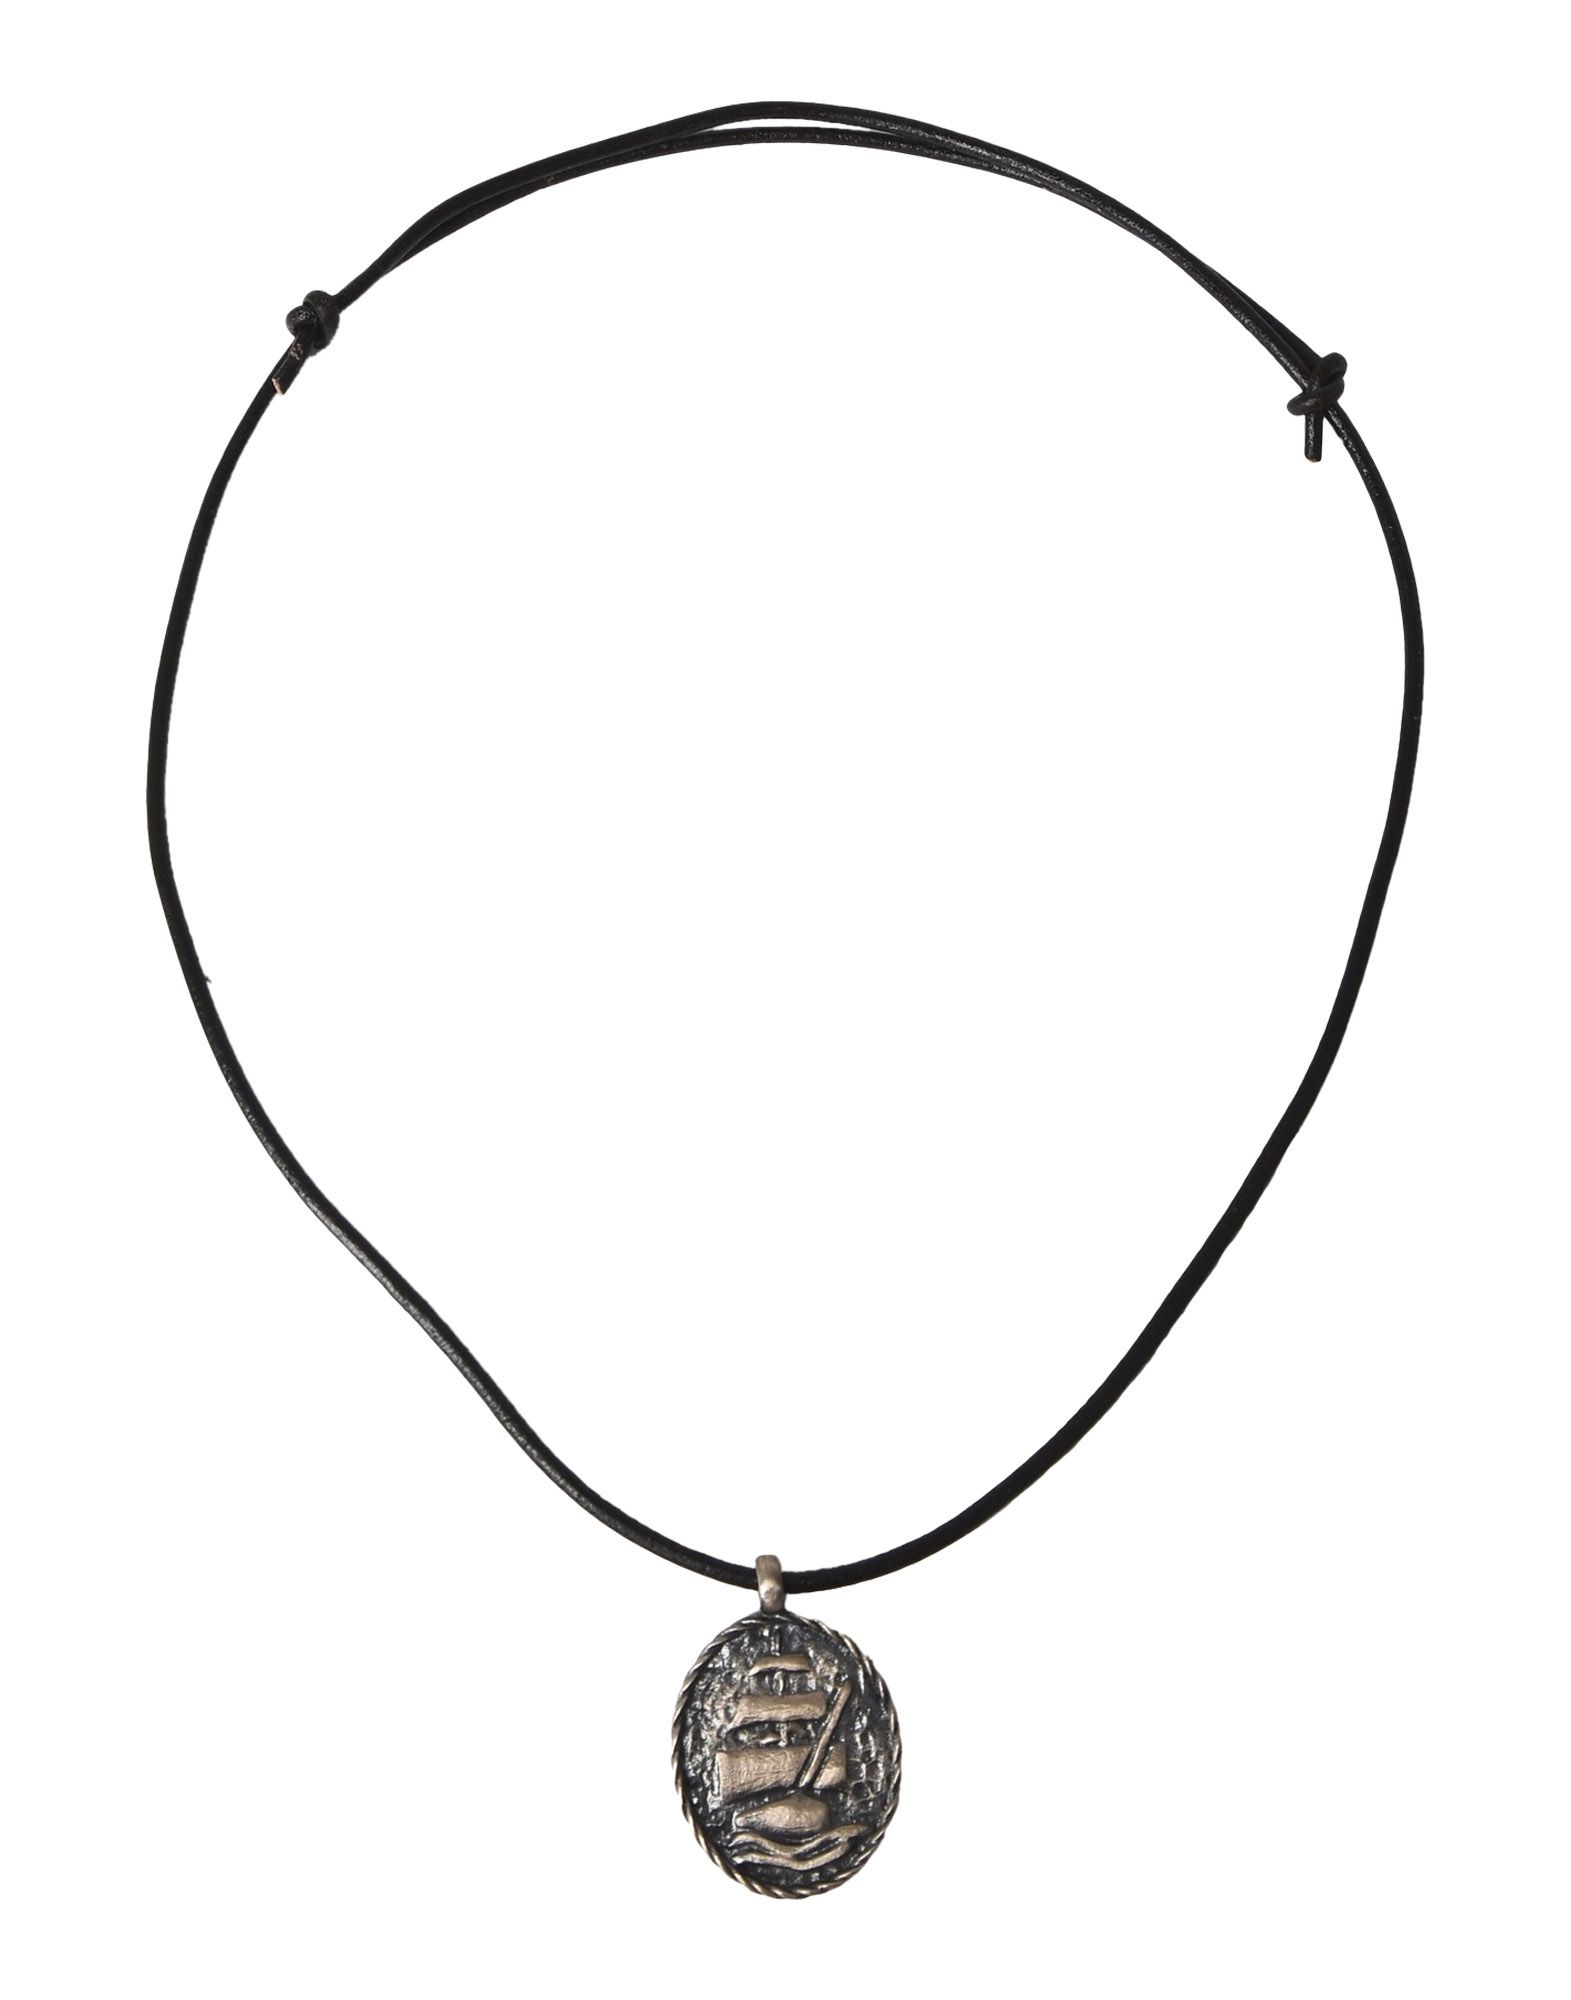 Collana First People First Sailor Chevalier Necklace - Donna - Acquista online su